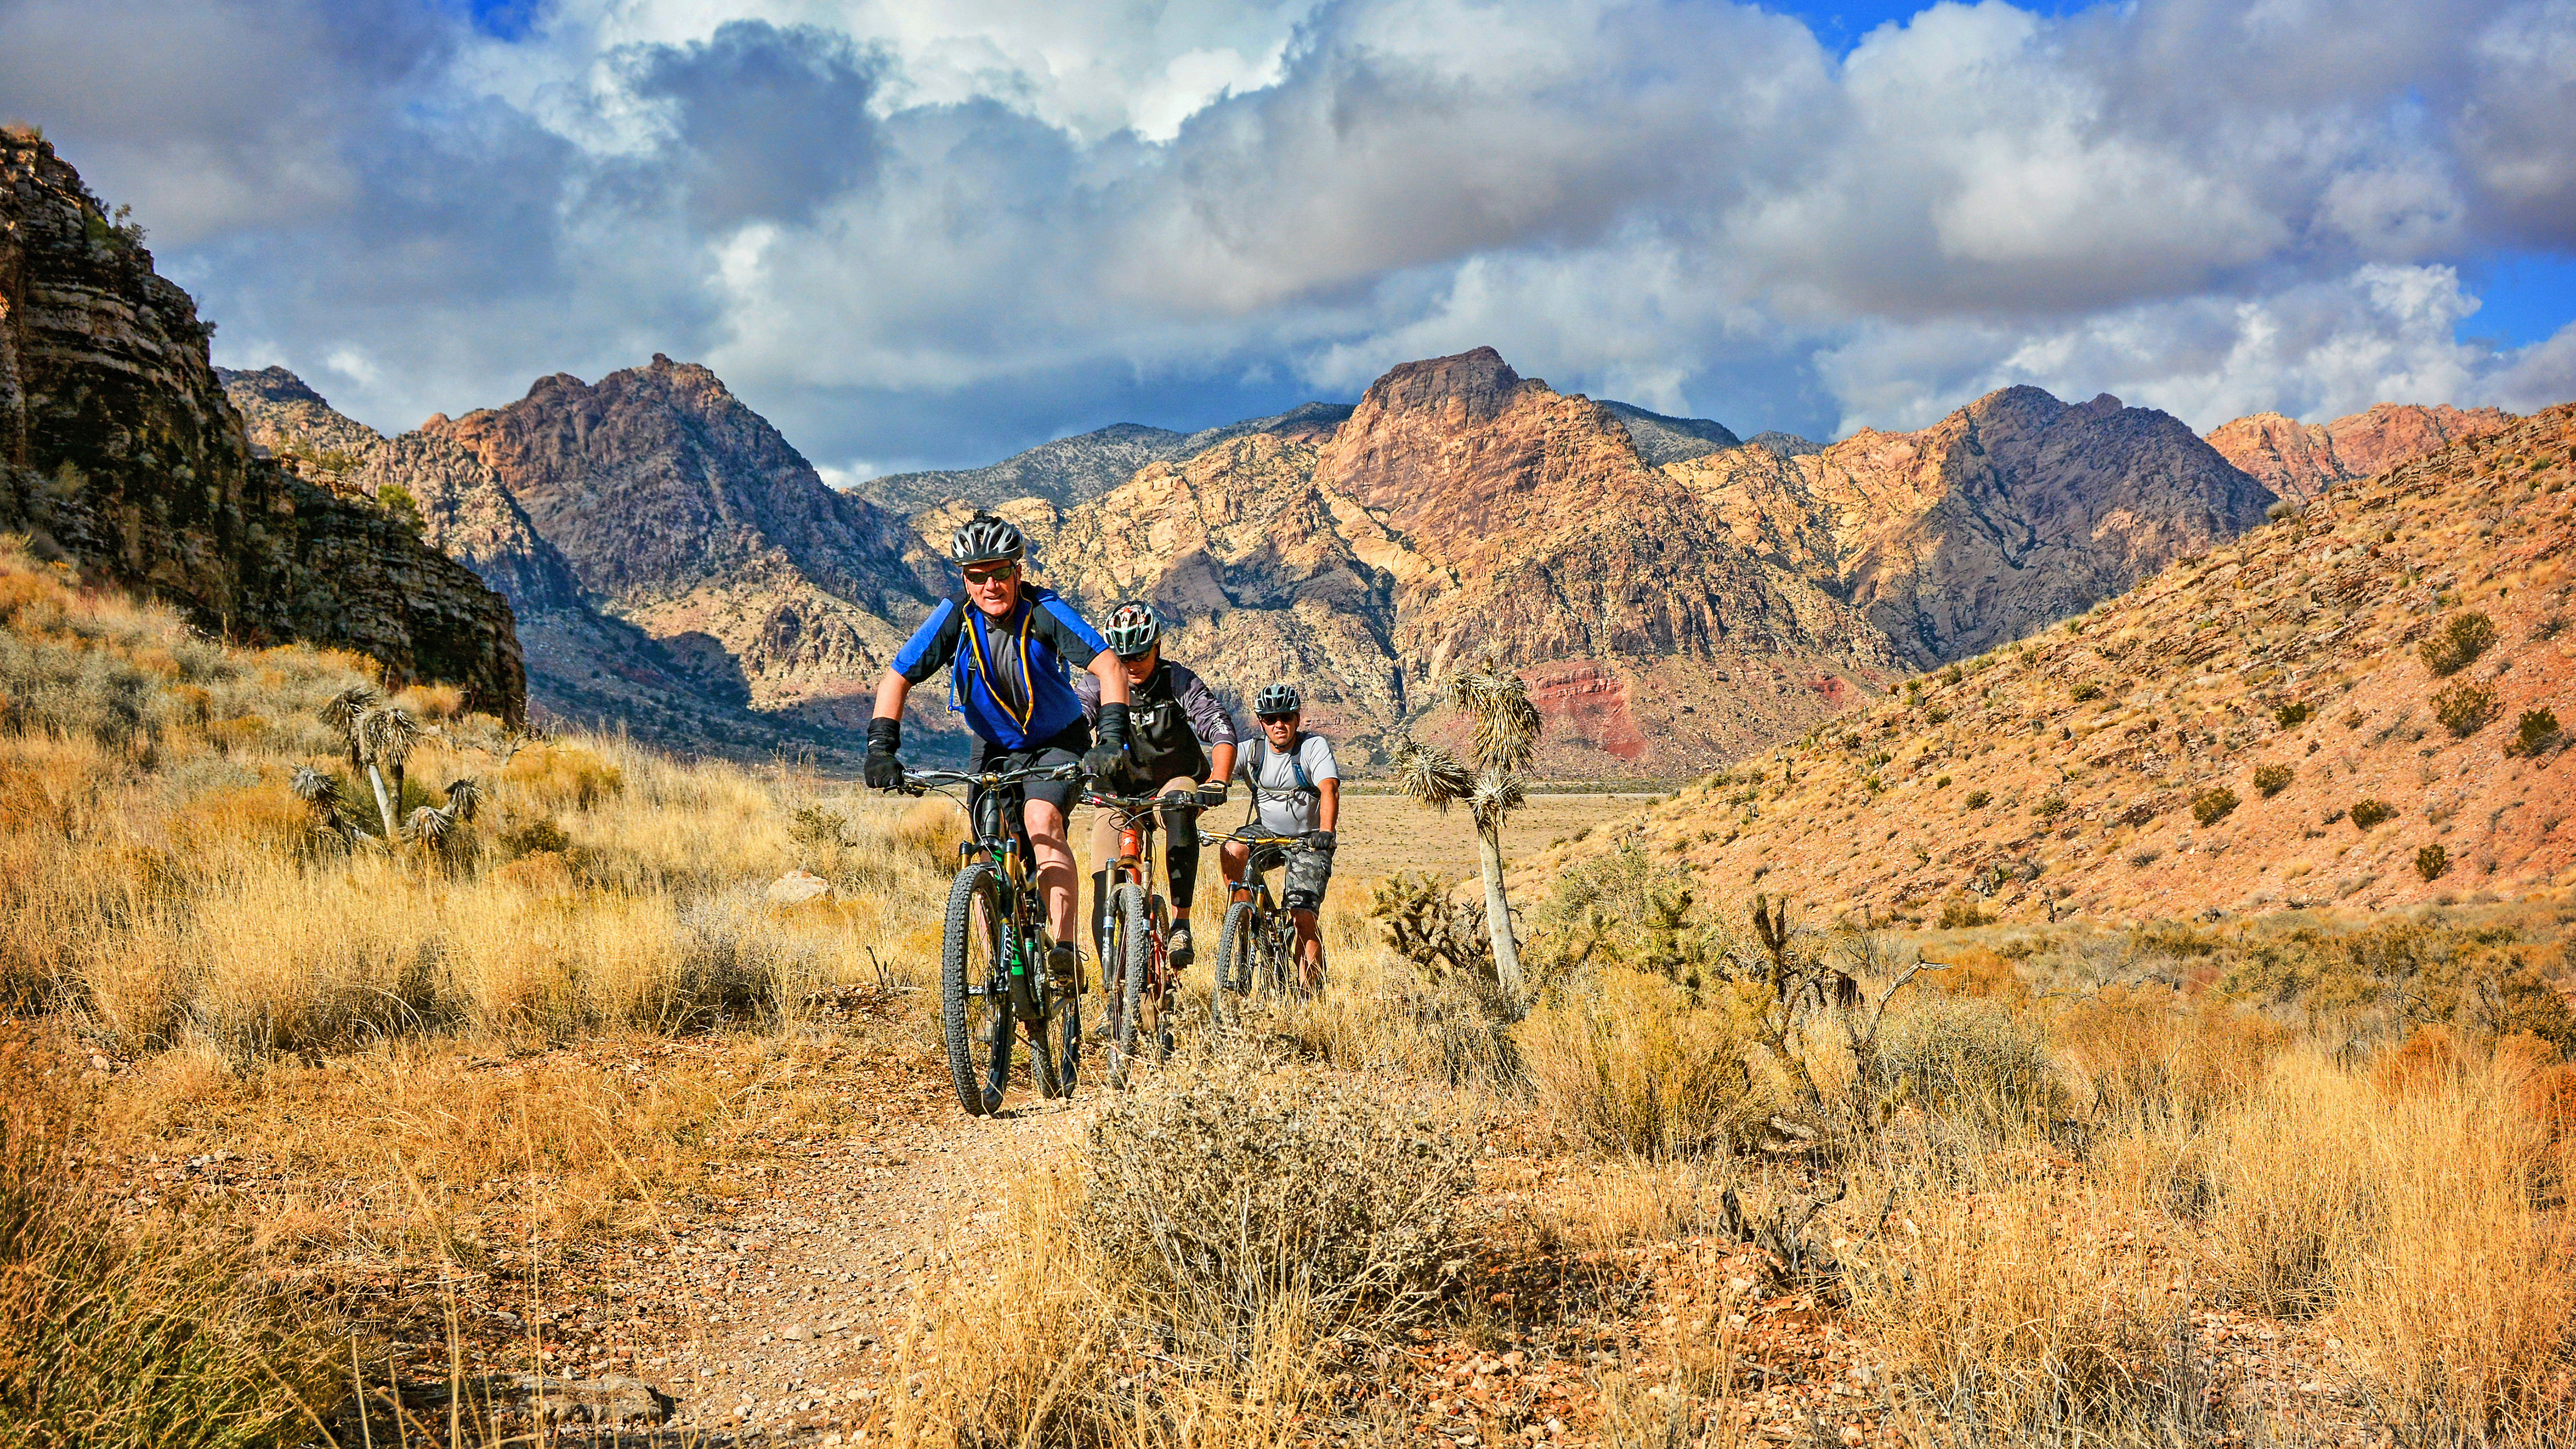 10 Must See Places Outside Las Vegas Cnn Travel The Best Ways To Run Power Outdoors Page 1 Of 2